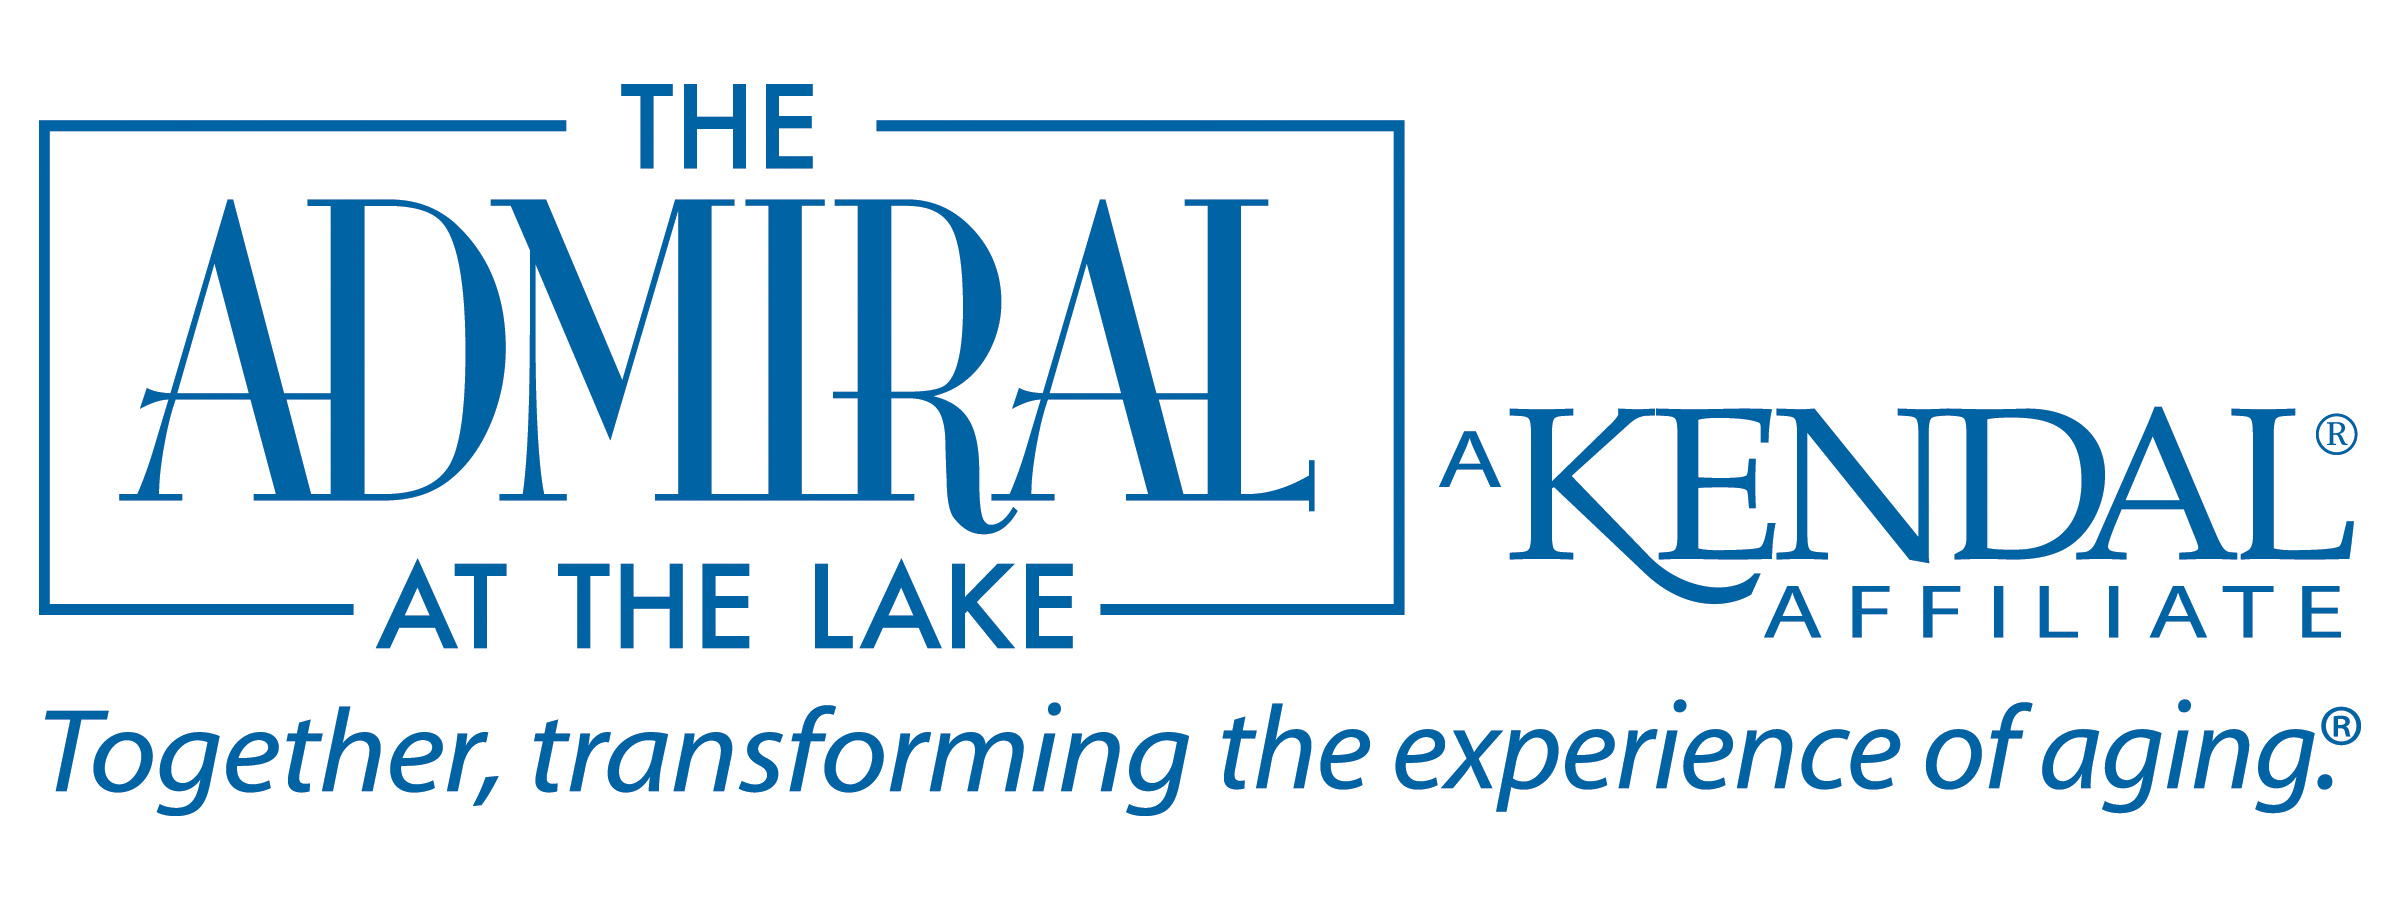 Logo for The Admiral at the Lake